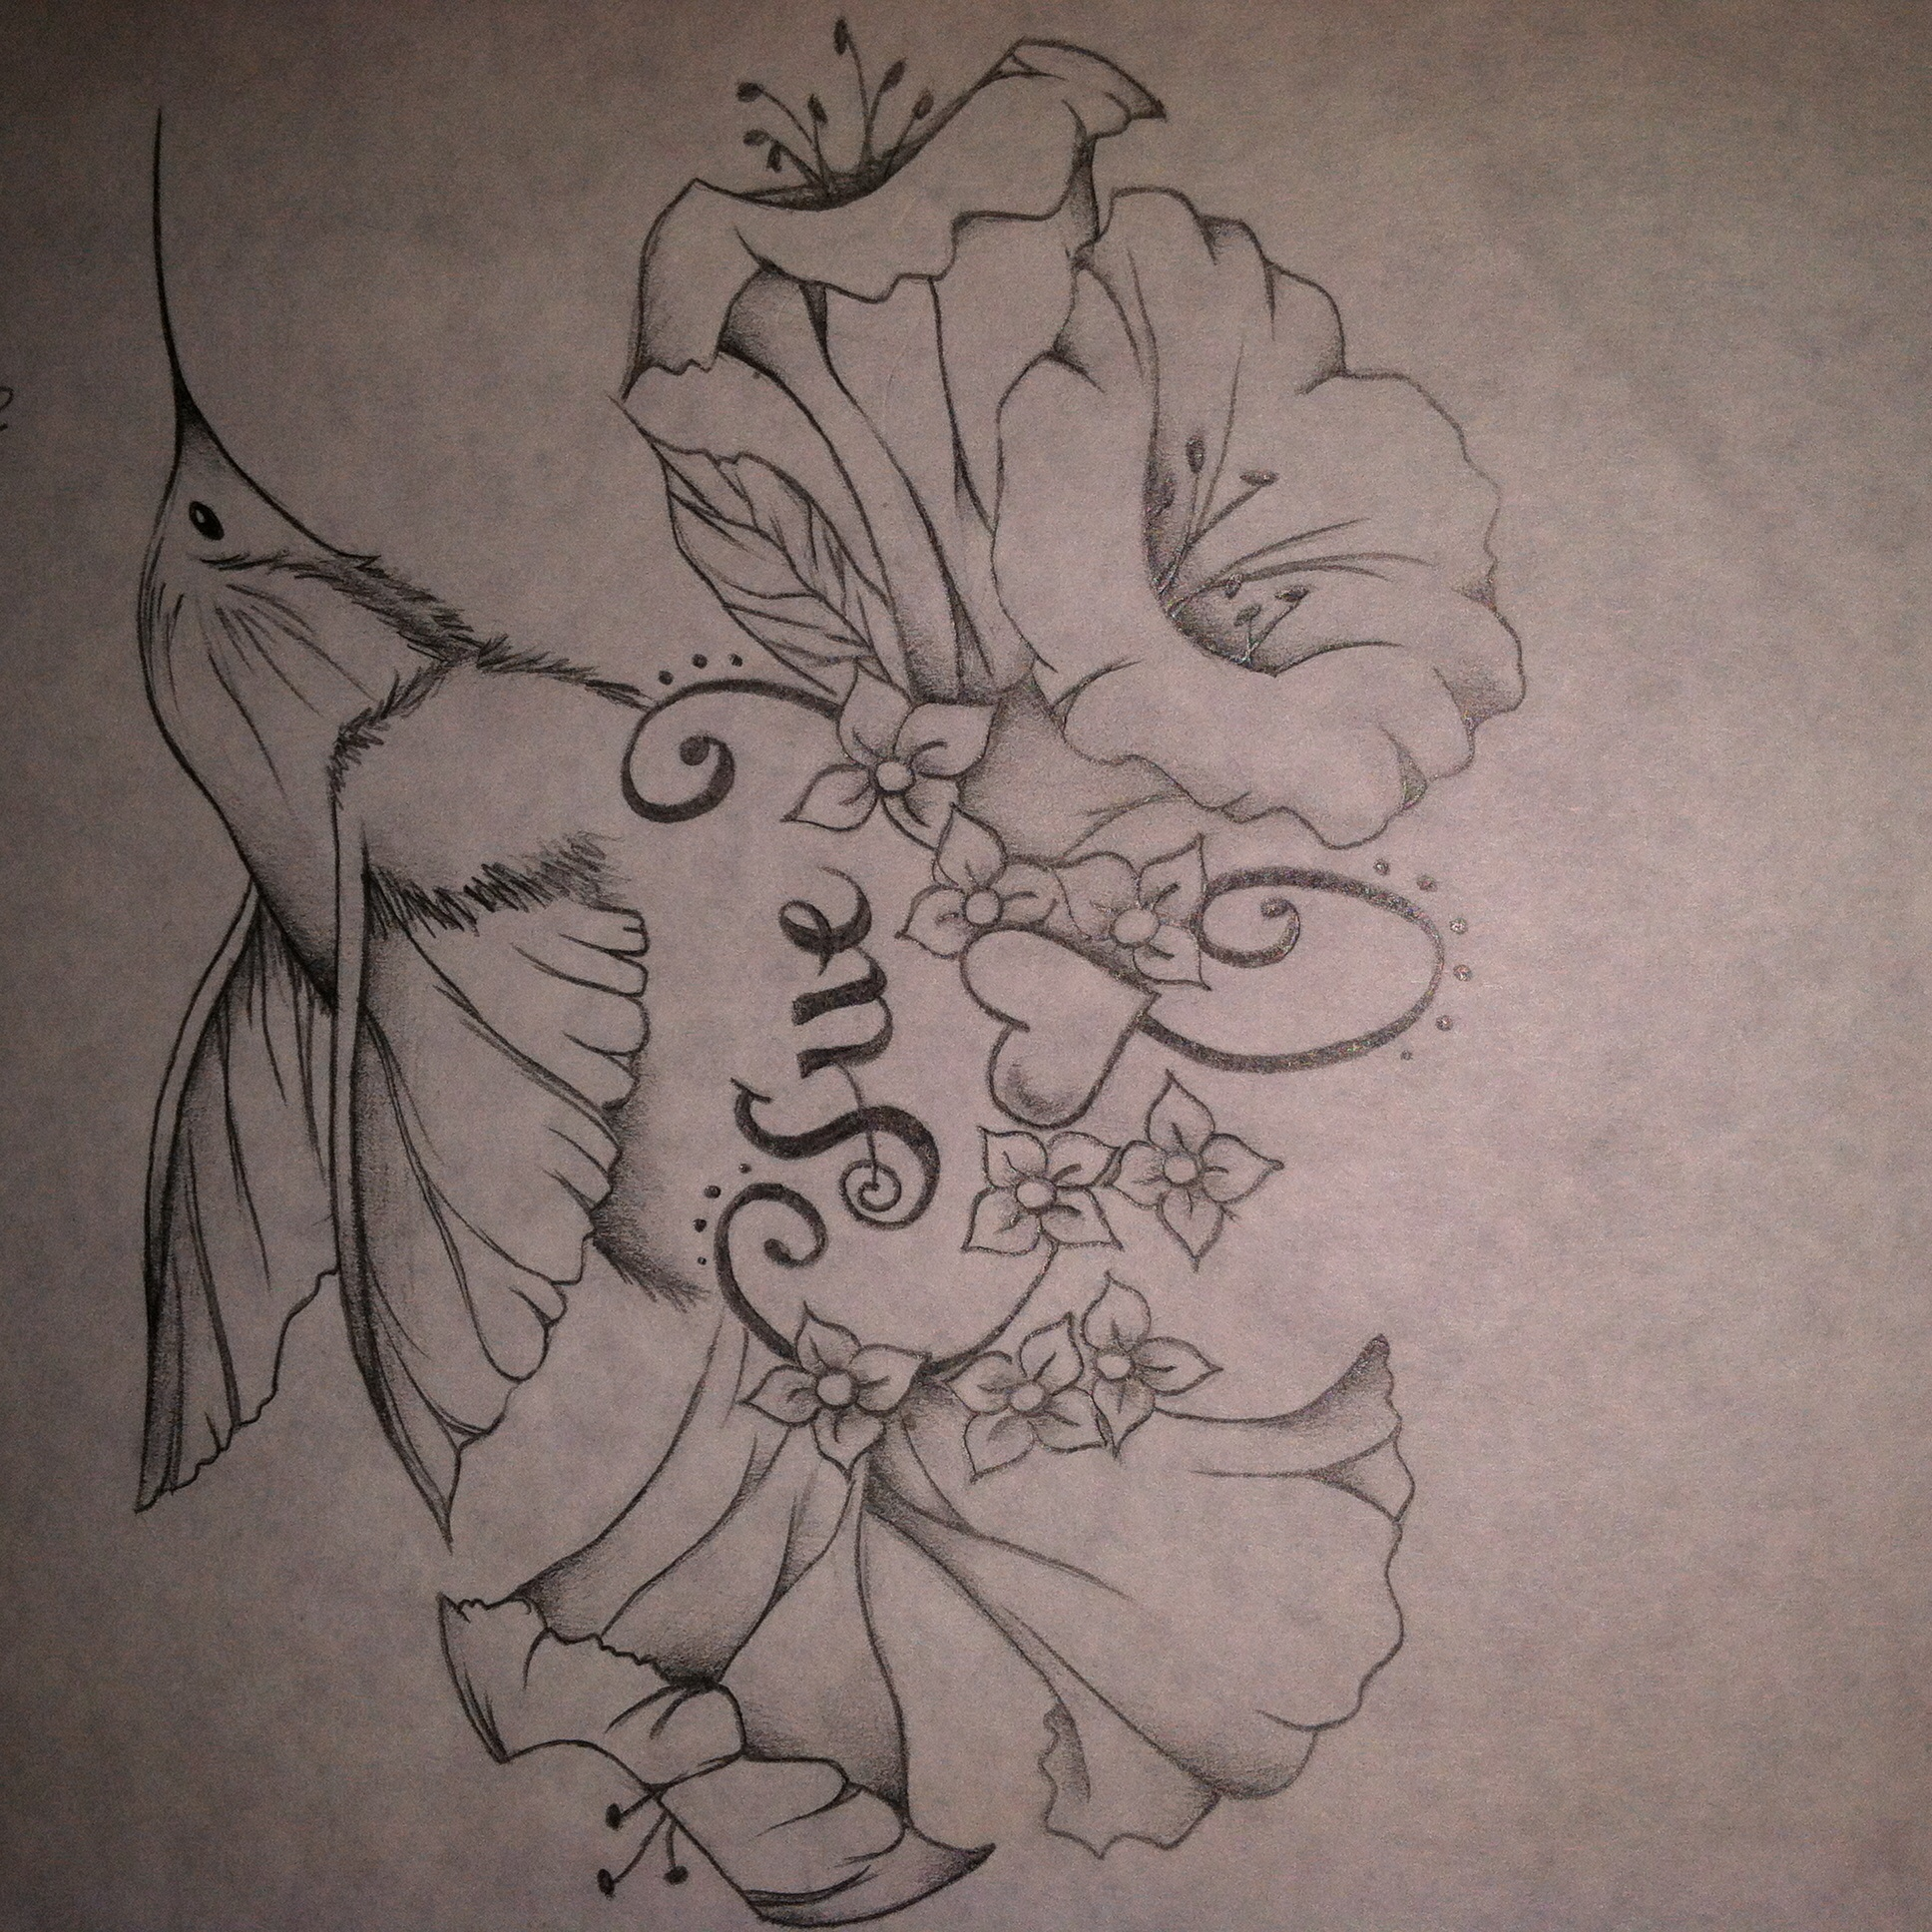 design/redesign any tattoo of your choice